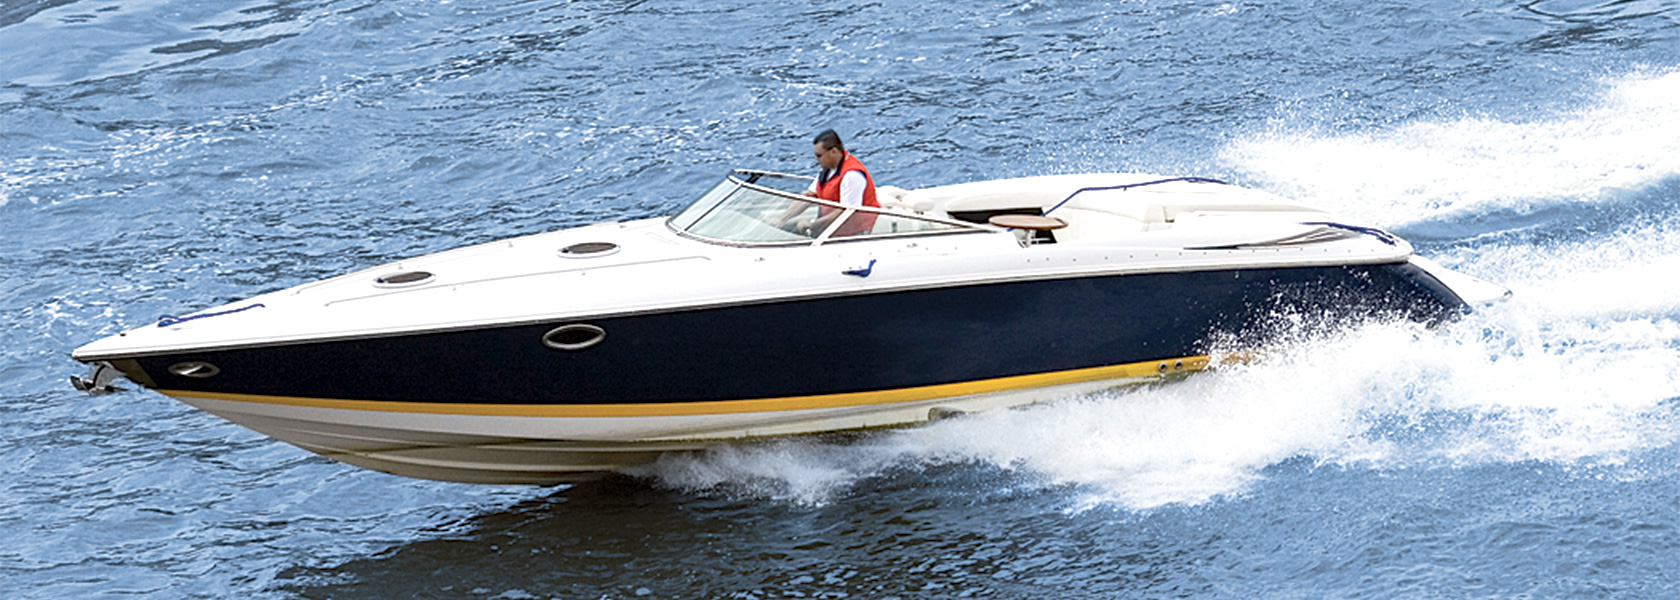 Cablecraft Motion Controls offers standard and custom cables and linkages for a variety of marine and commercial marine applications.